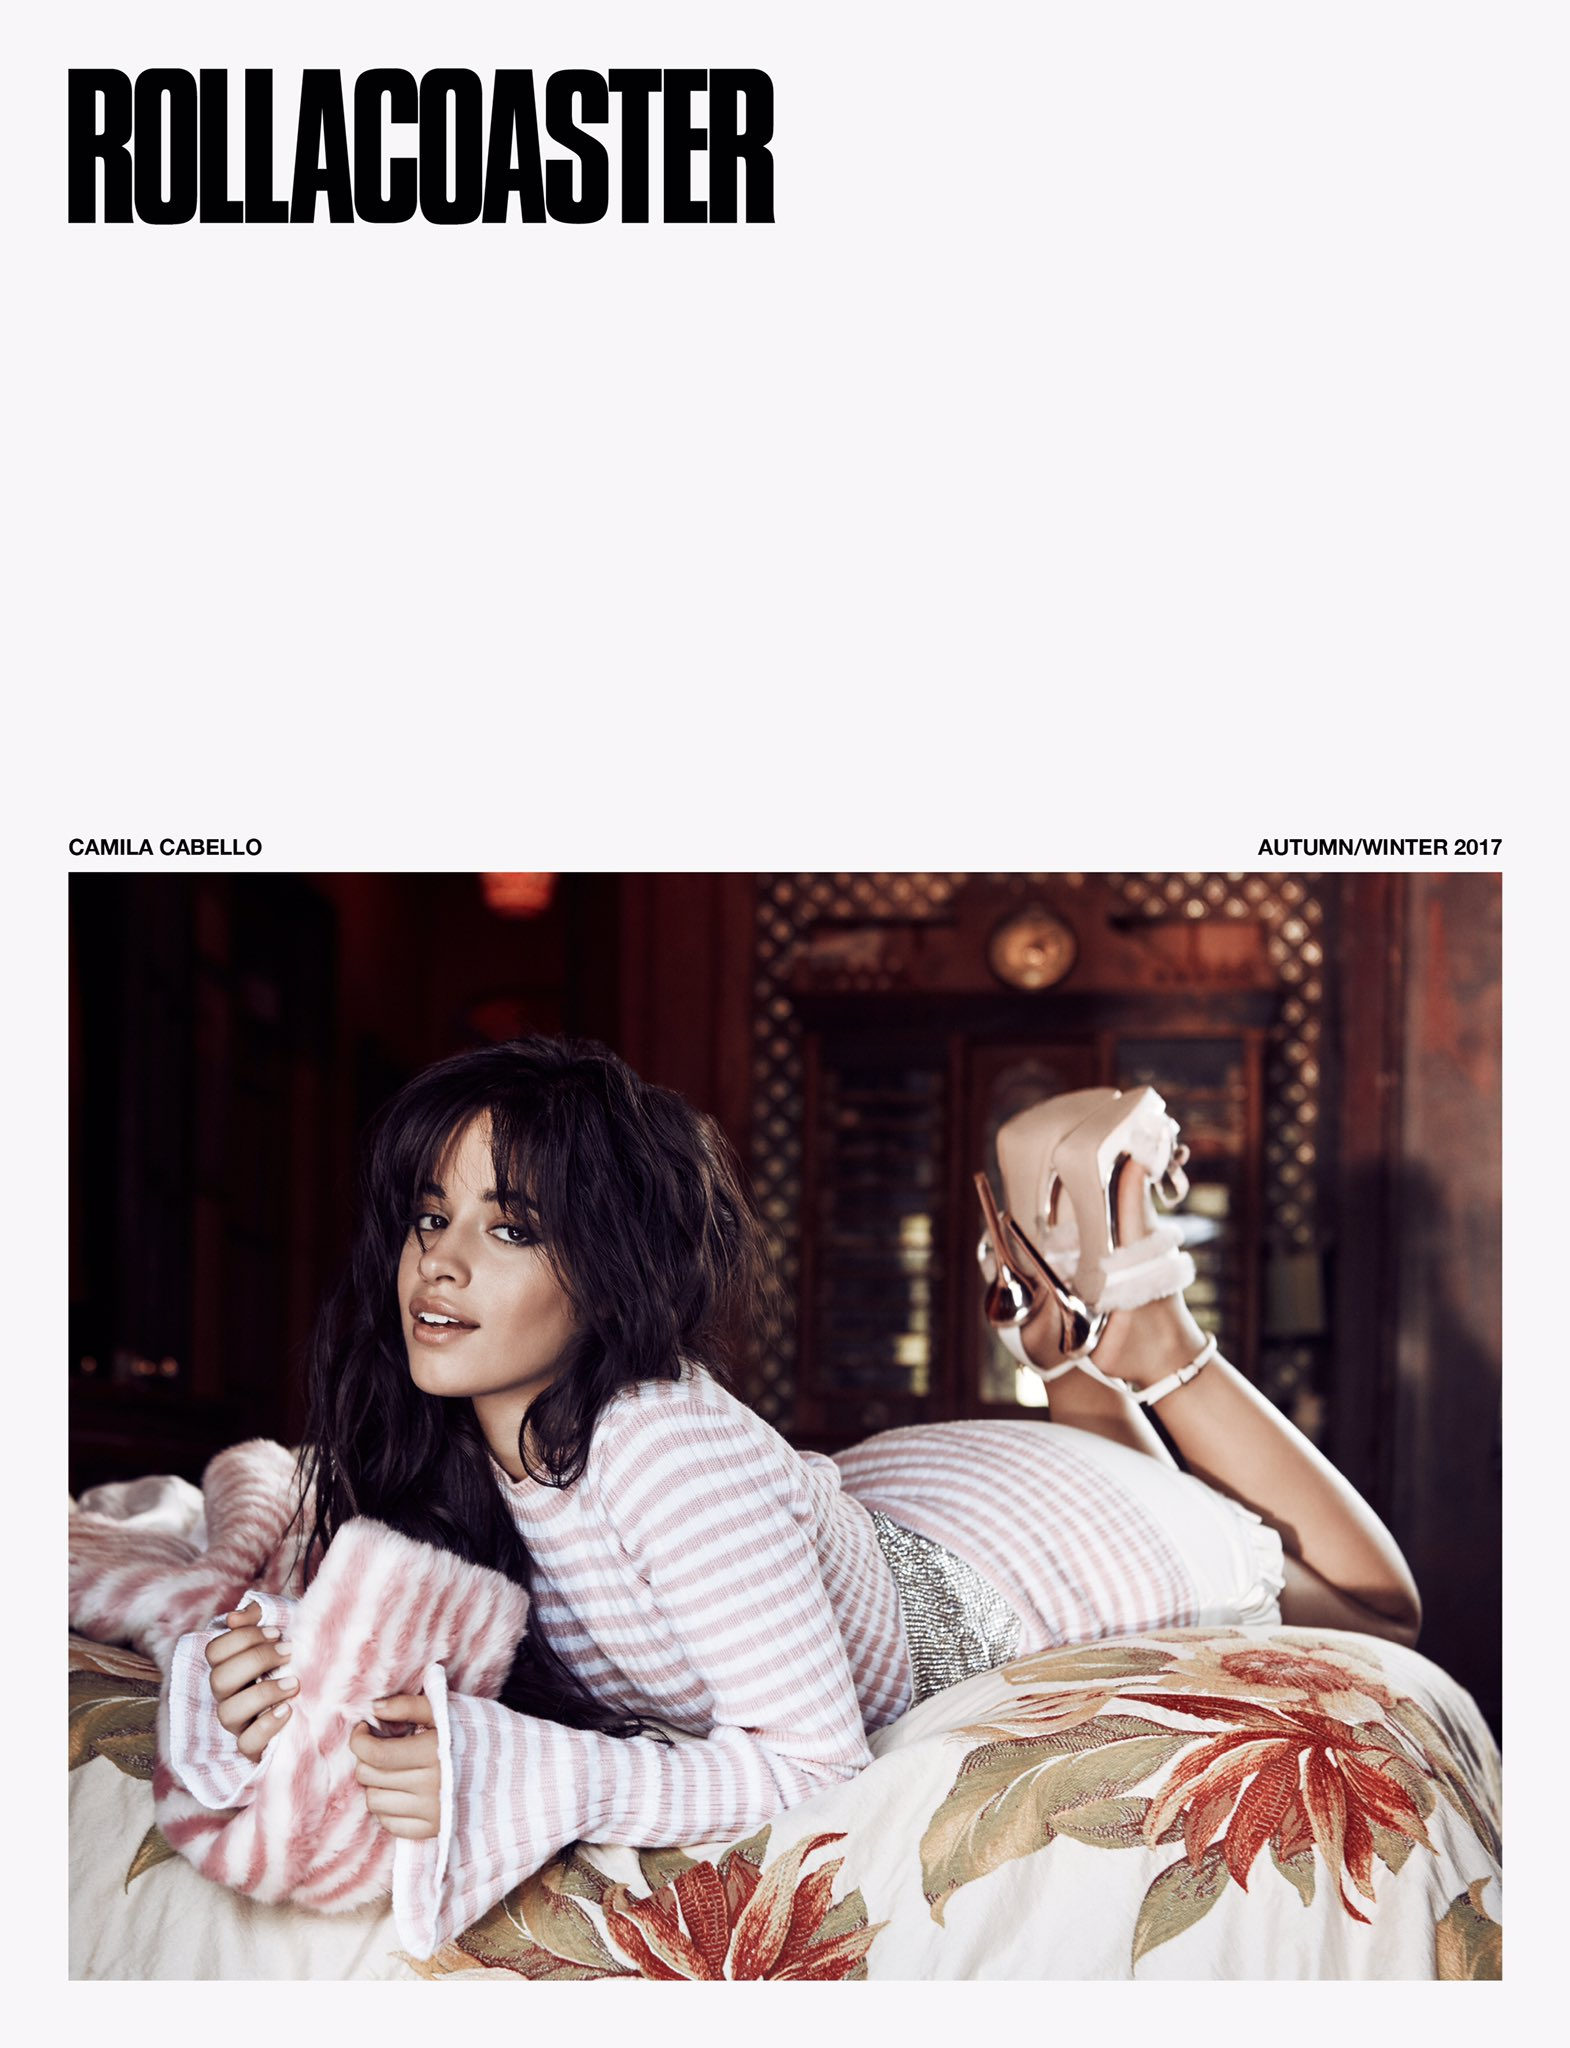 �� OMG, YOU LOOK GOOD TODAY �� @Camila_Cabello covers the A/W 2017 Issue �� pre-order today �� https://t.co/GTAKLIhdPs �� https://t.co/HlPJ5AeOuZ